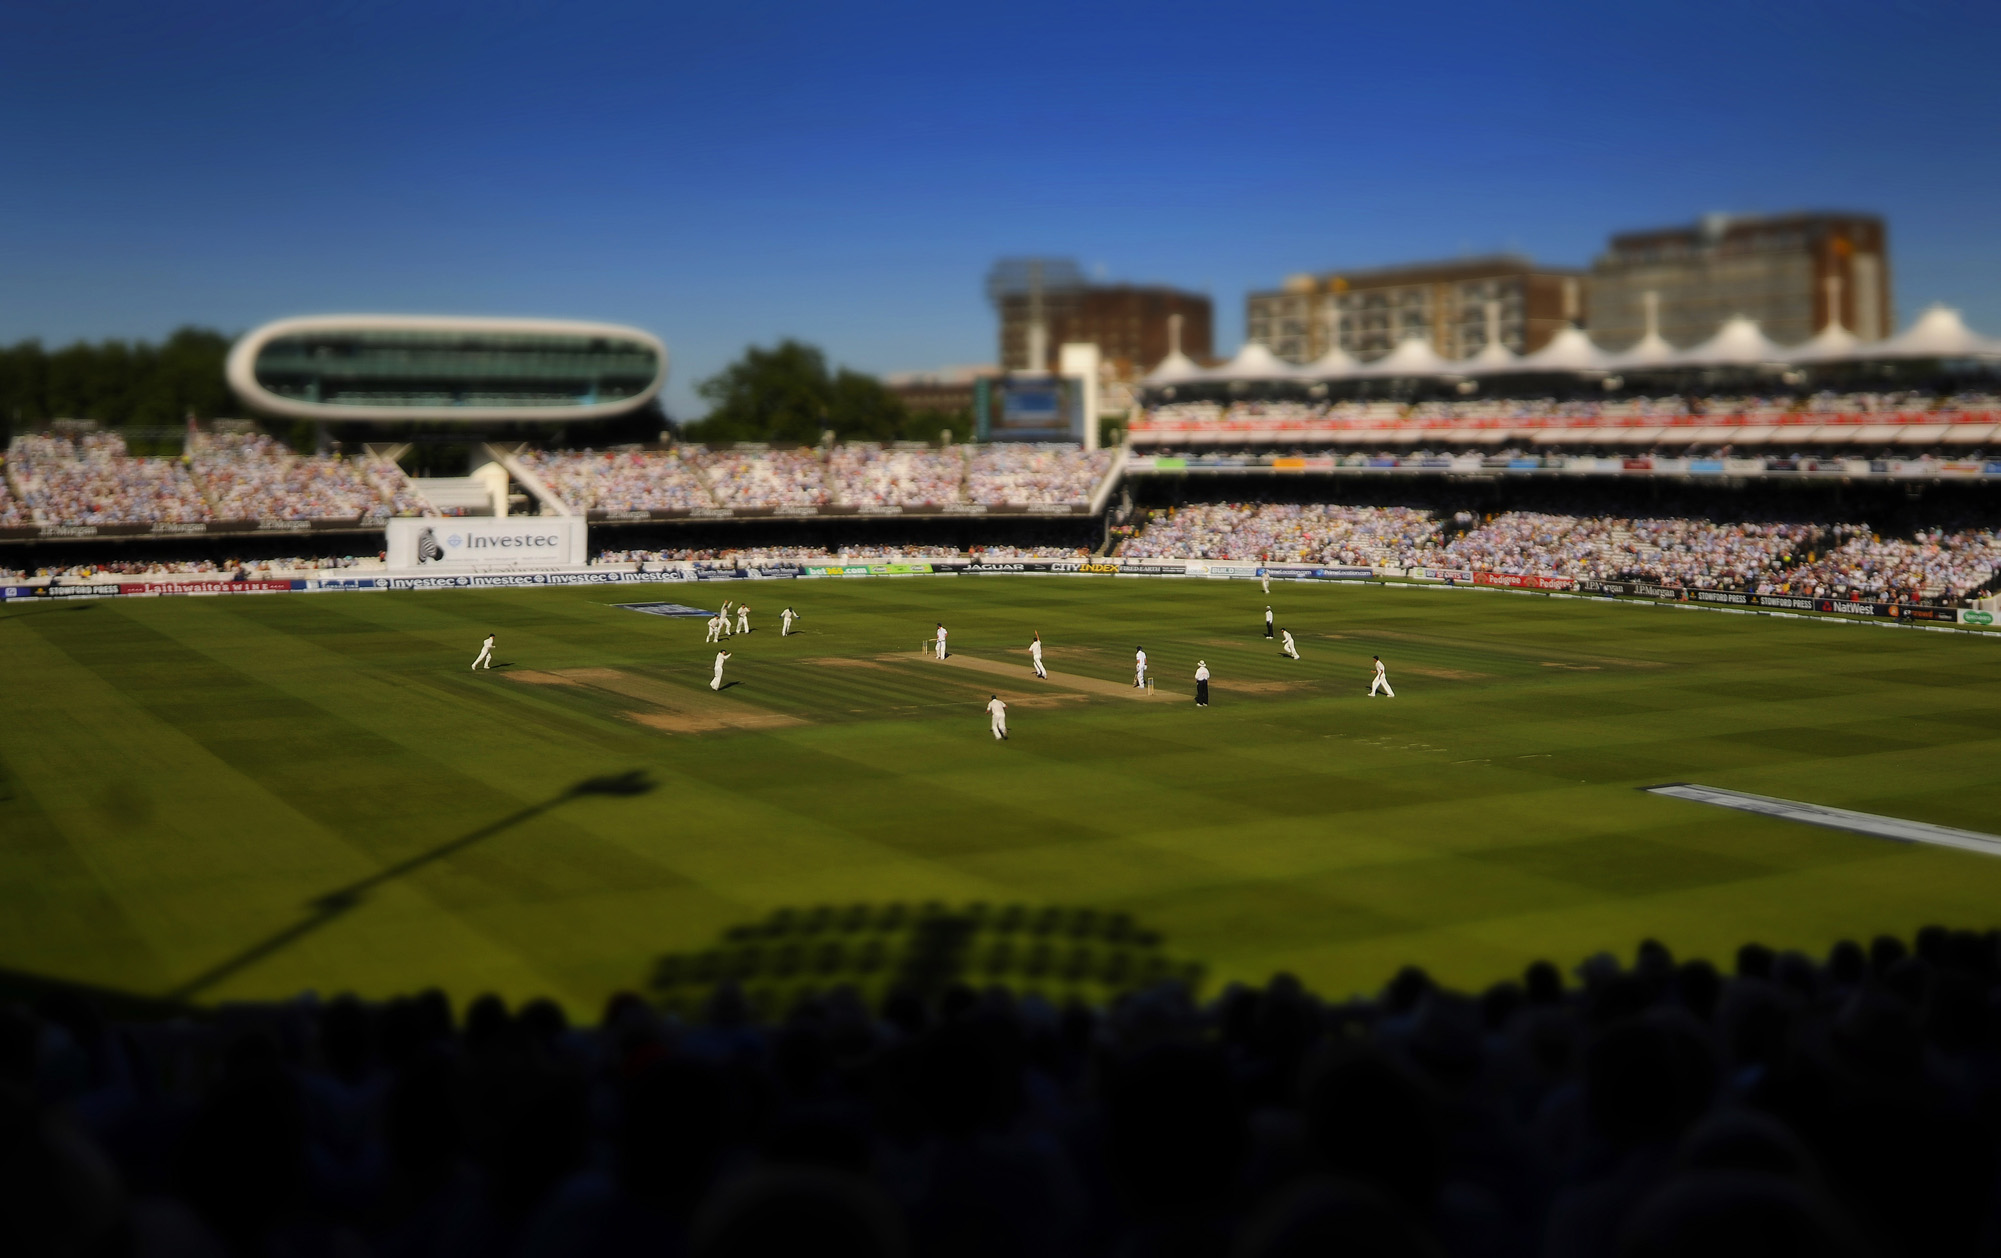 Lord's Cricket Ground for Investec